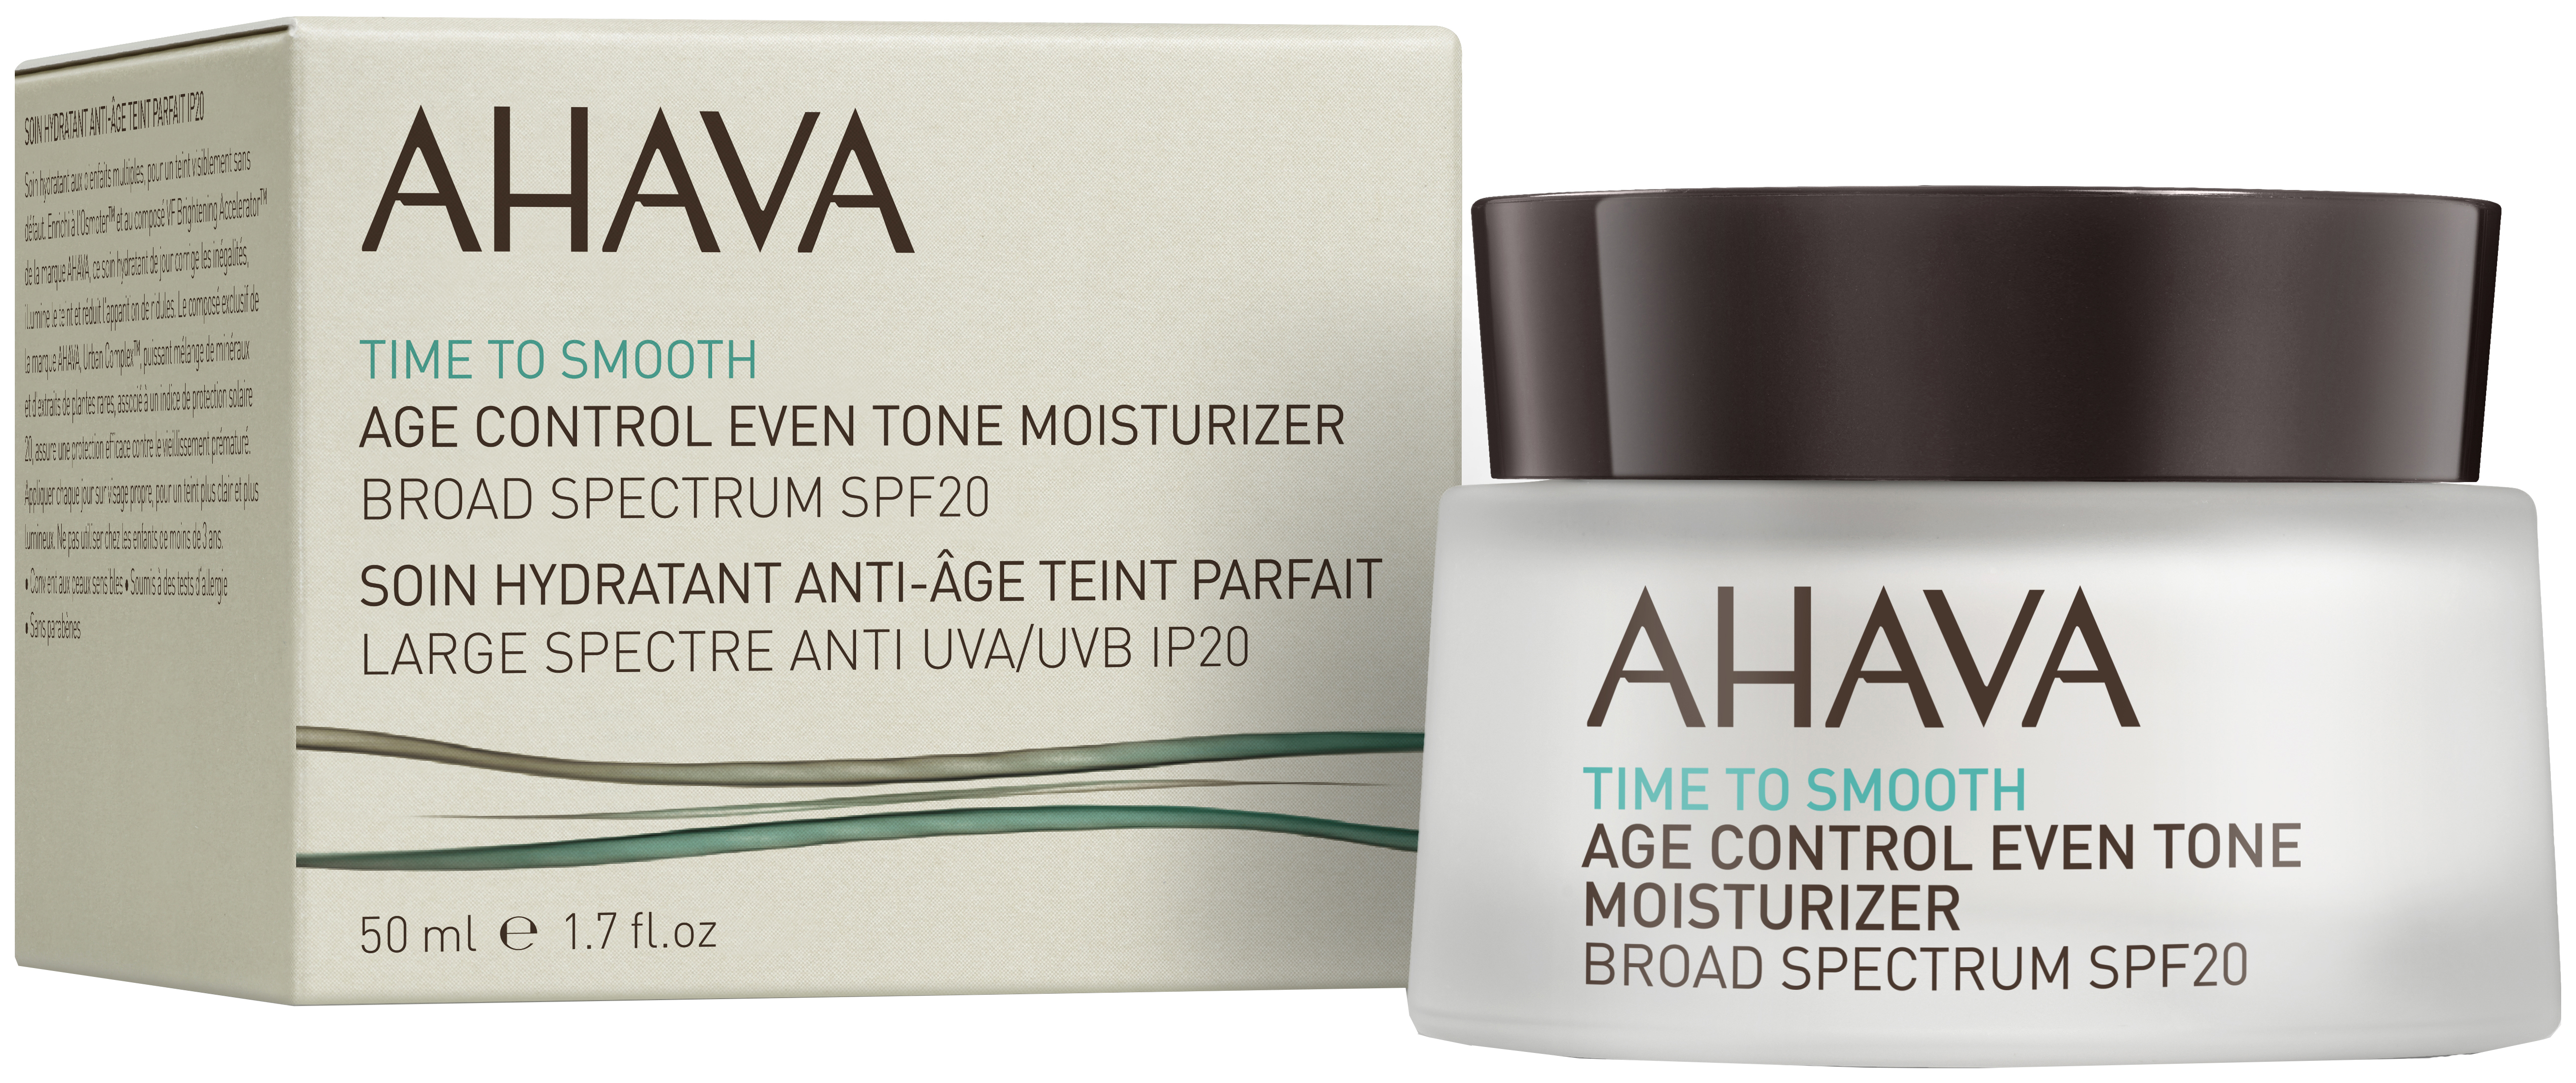 AHAVA TIME TO SMOOTH AGE CONTROL EVEN TONE MOISTURIZER SPF20